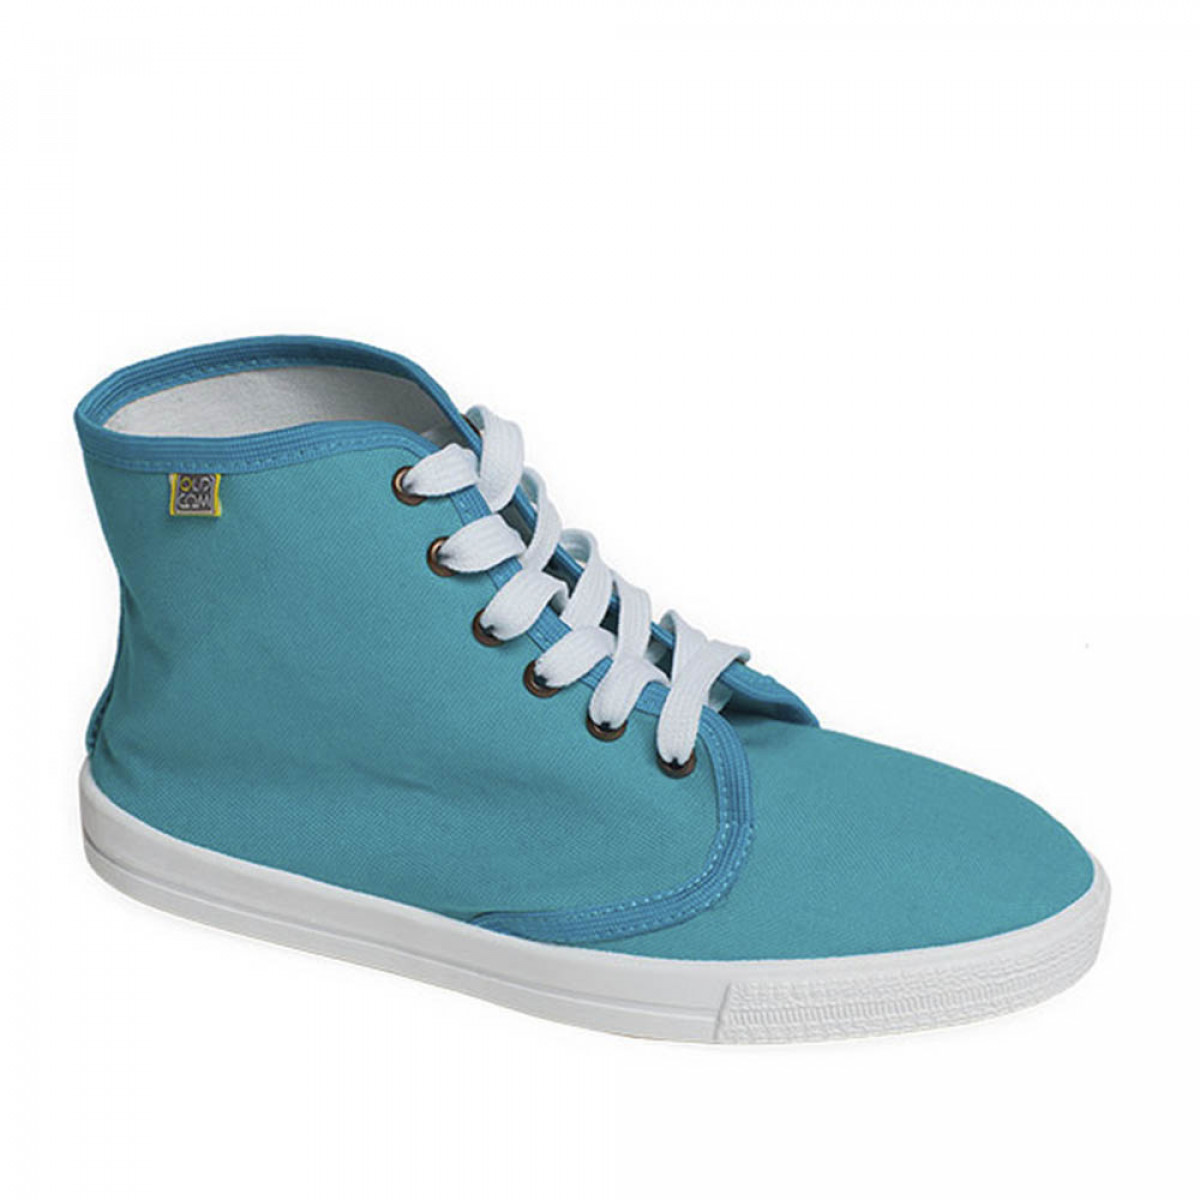 High-Top DERBY Sneakers, Turquoise